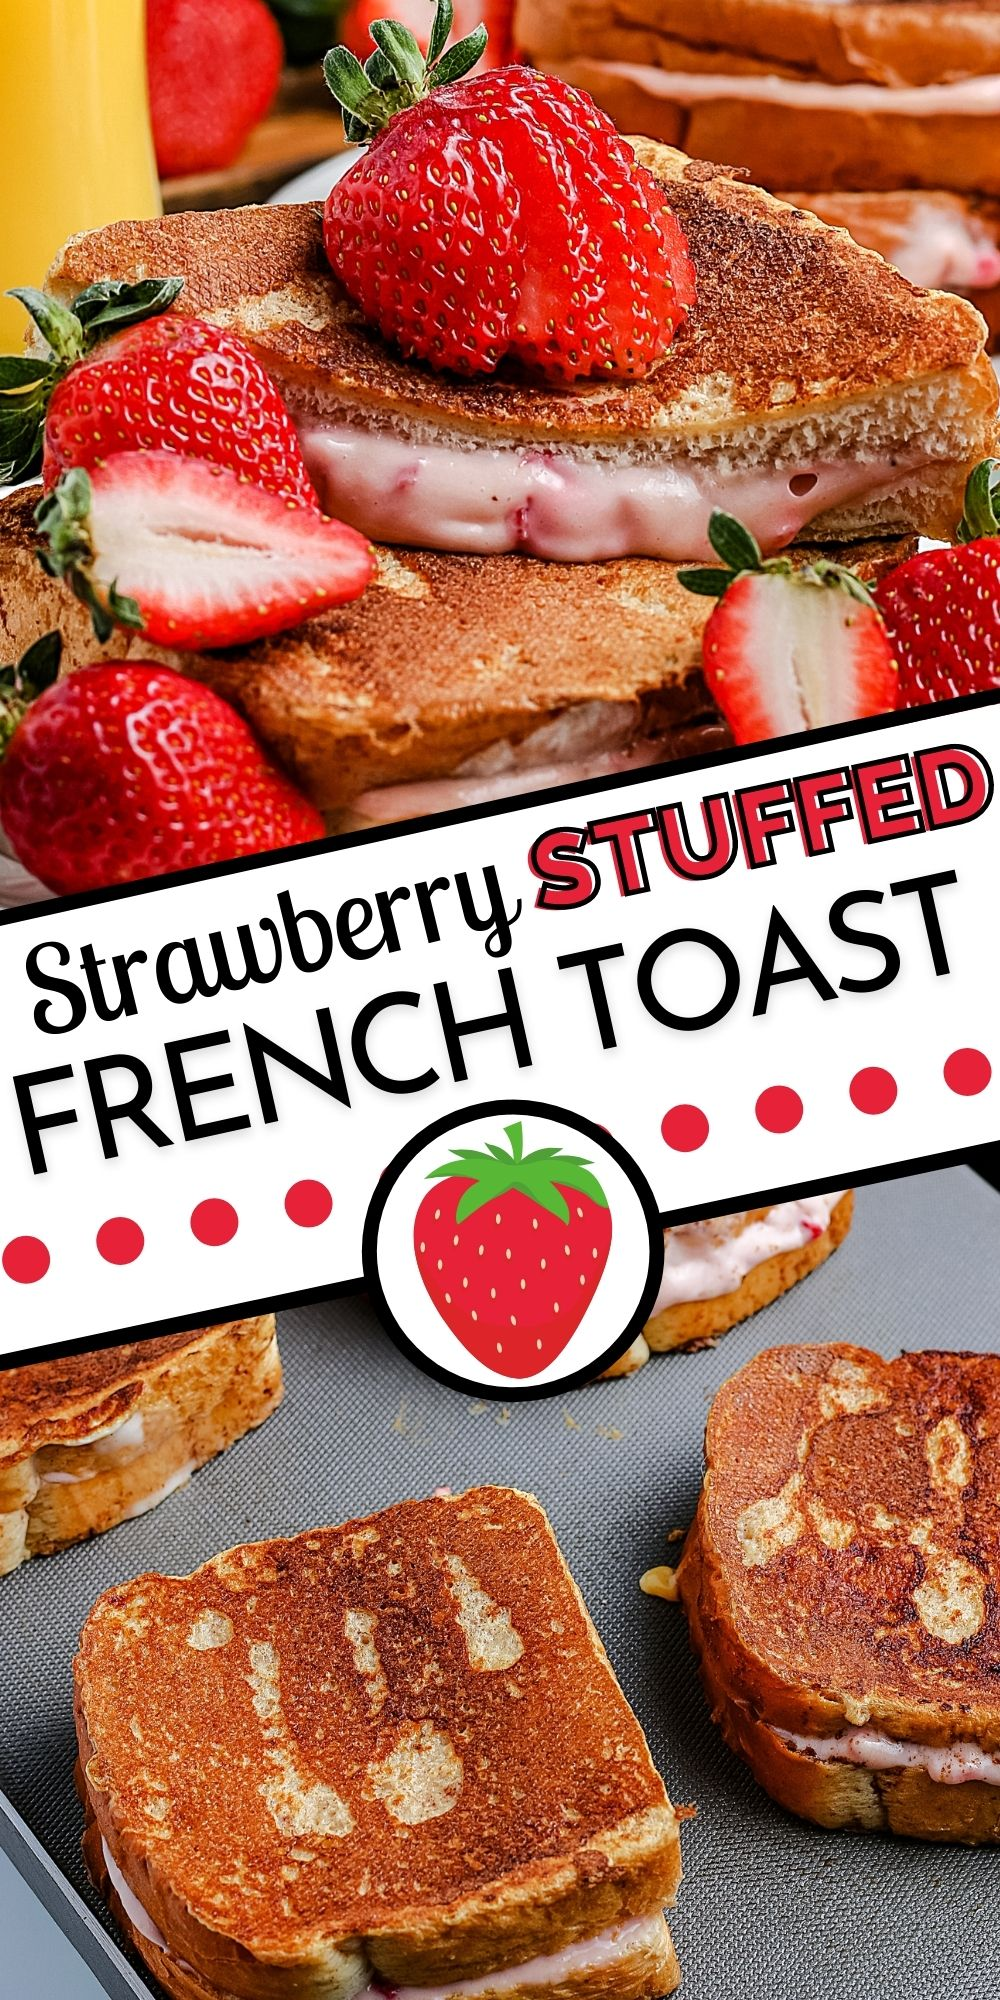 This Strawberry Stuffed French Toast recipe is filled with a strawberry cream cheese mixture and cooked to golden-brown perfection. via @easybudgetrecipes